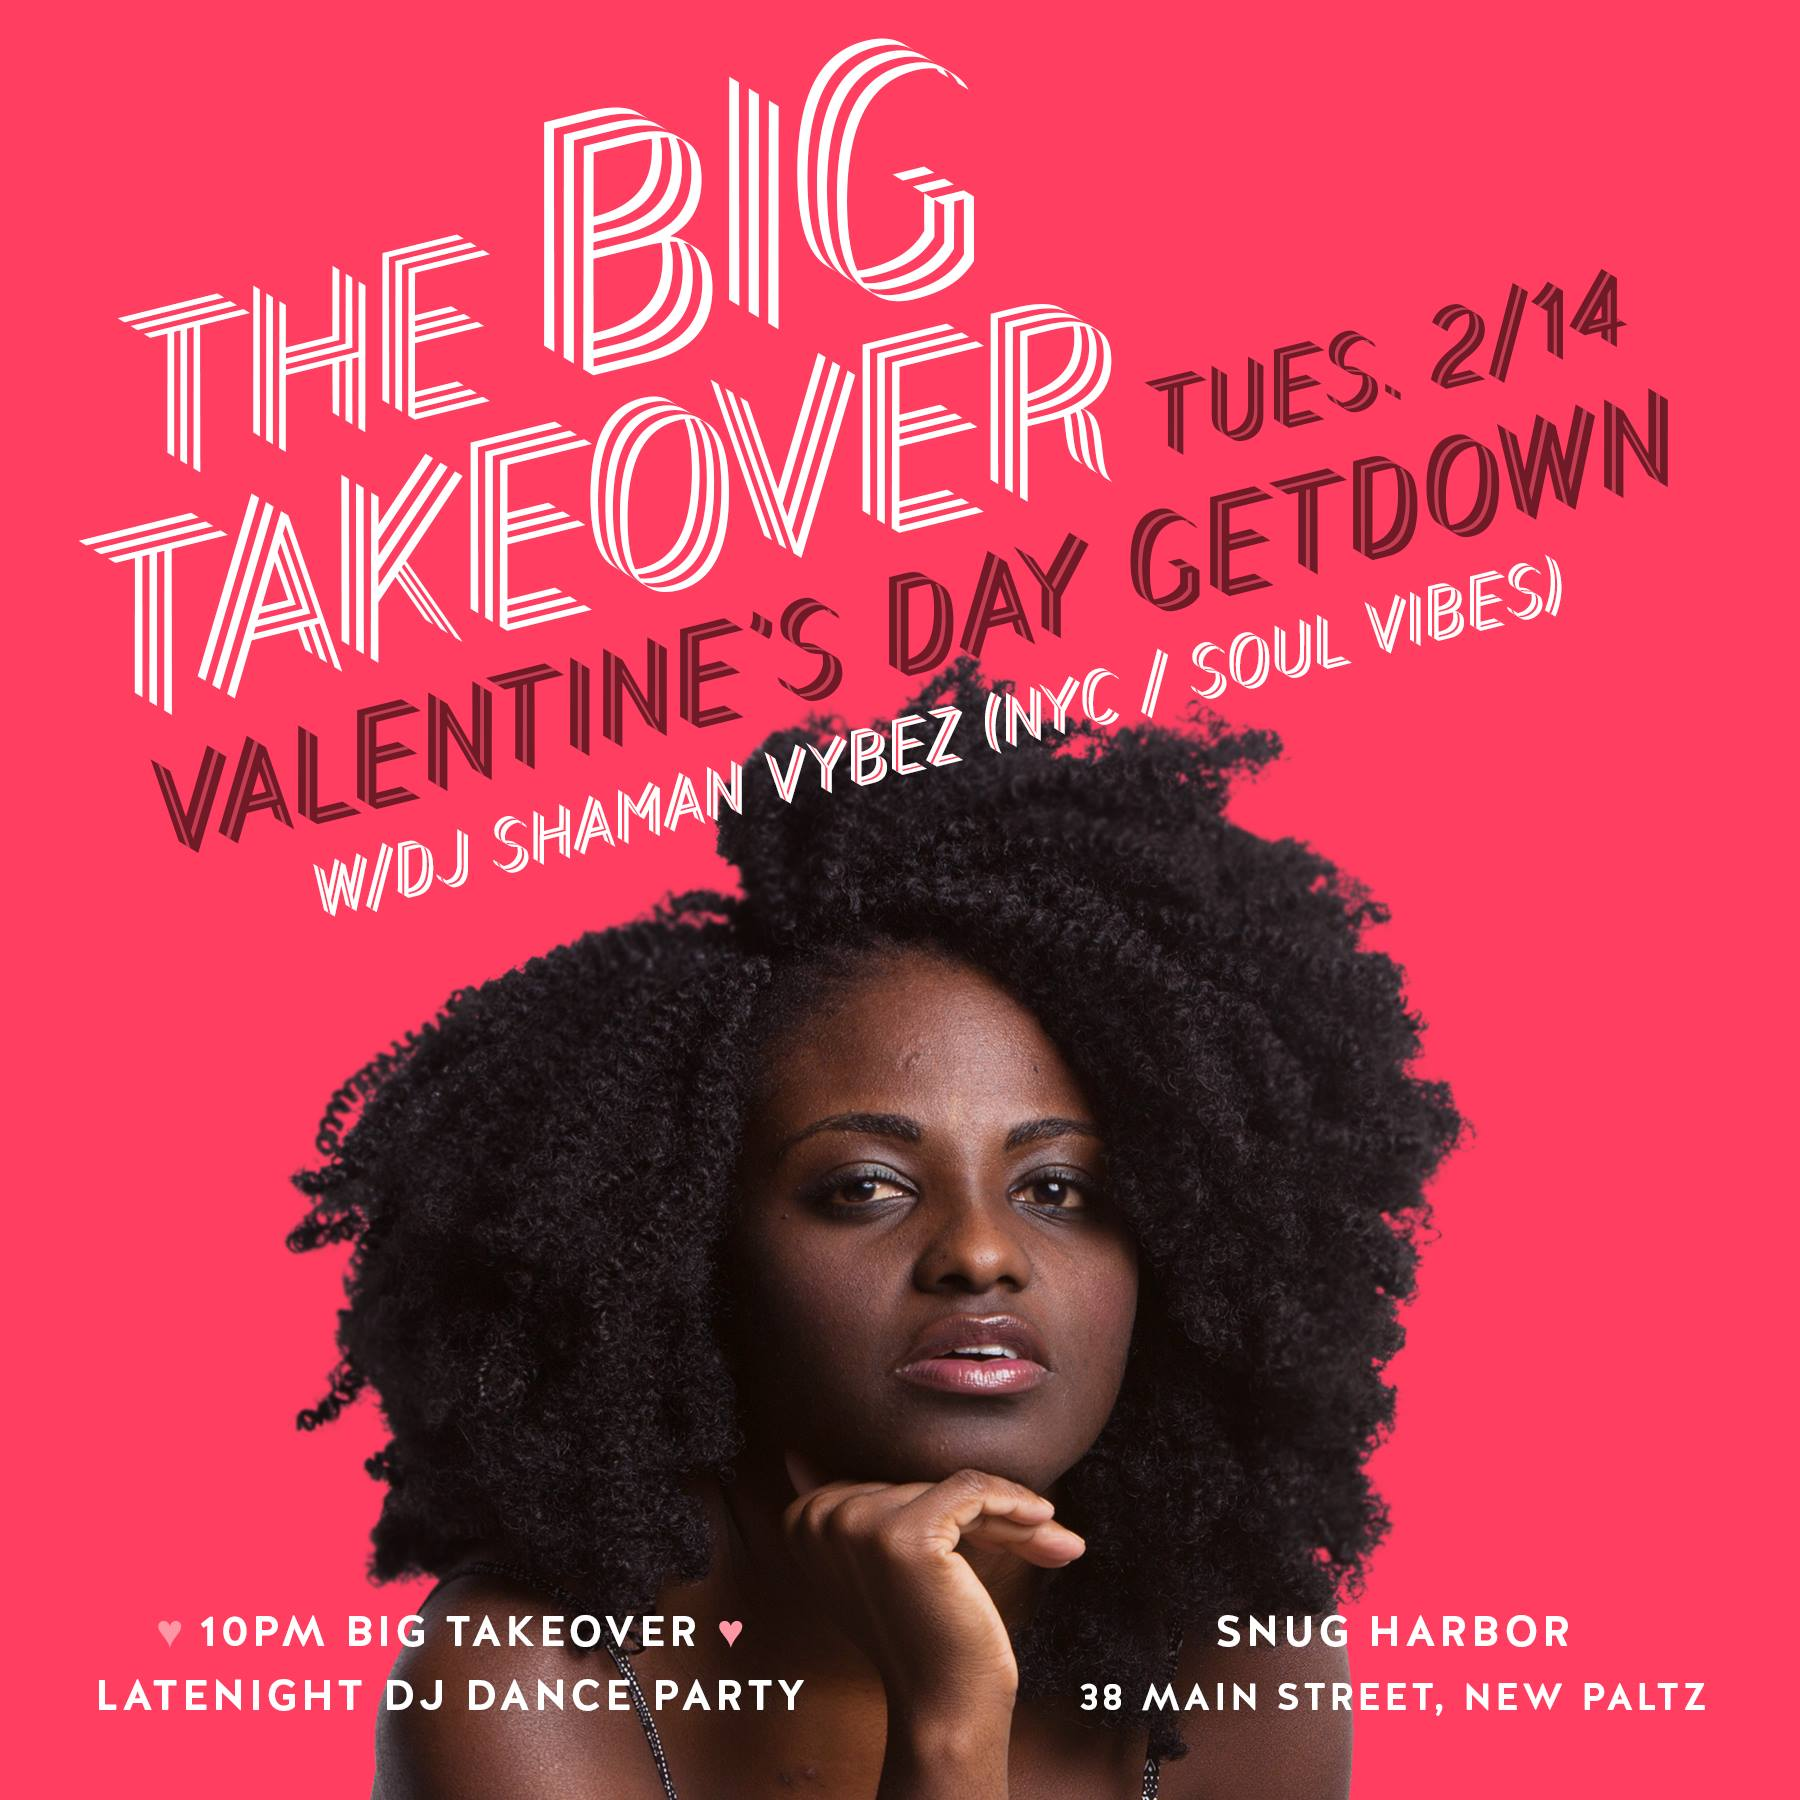 VALENTINES WITH THE BIG TAKEOVER & SPECIAL GUEST DJ SHAMAN VYBEZ @ SNUG HARBOR